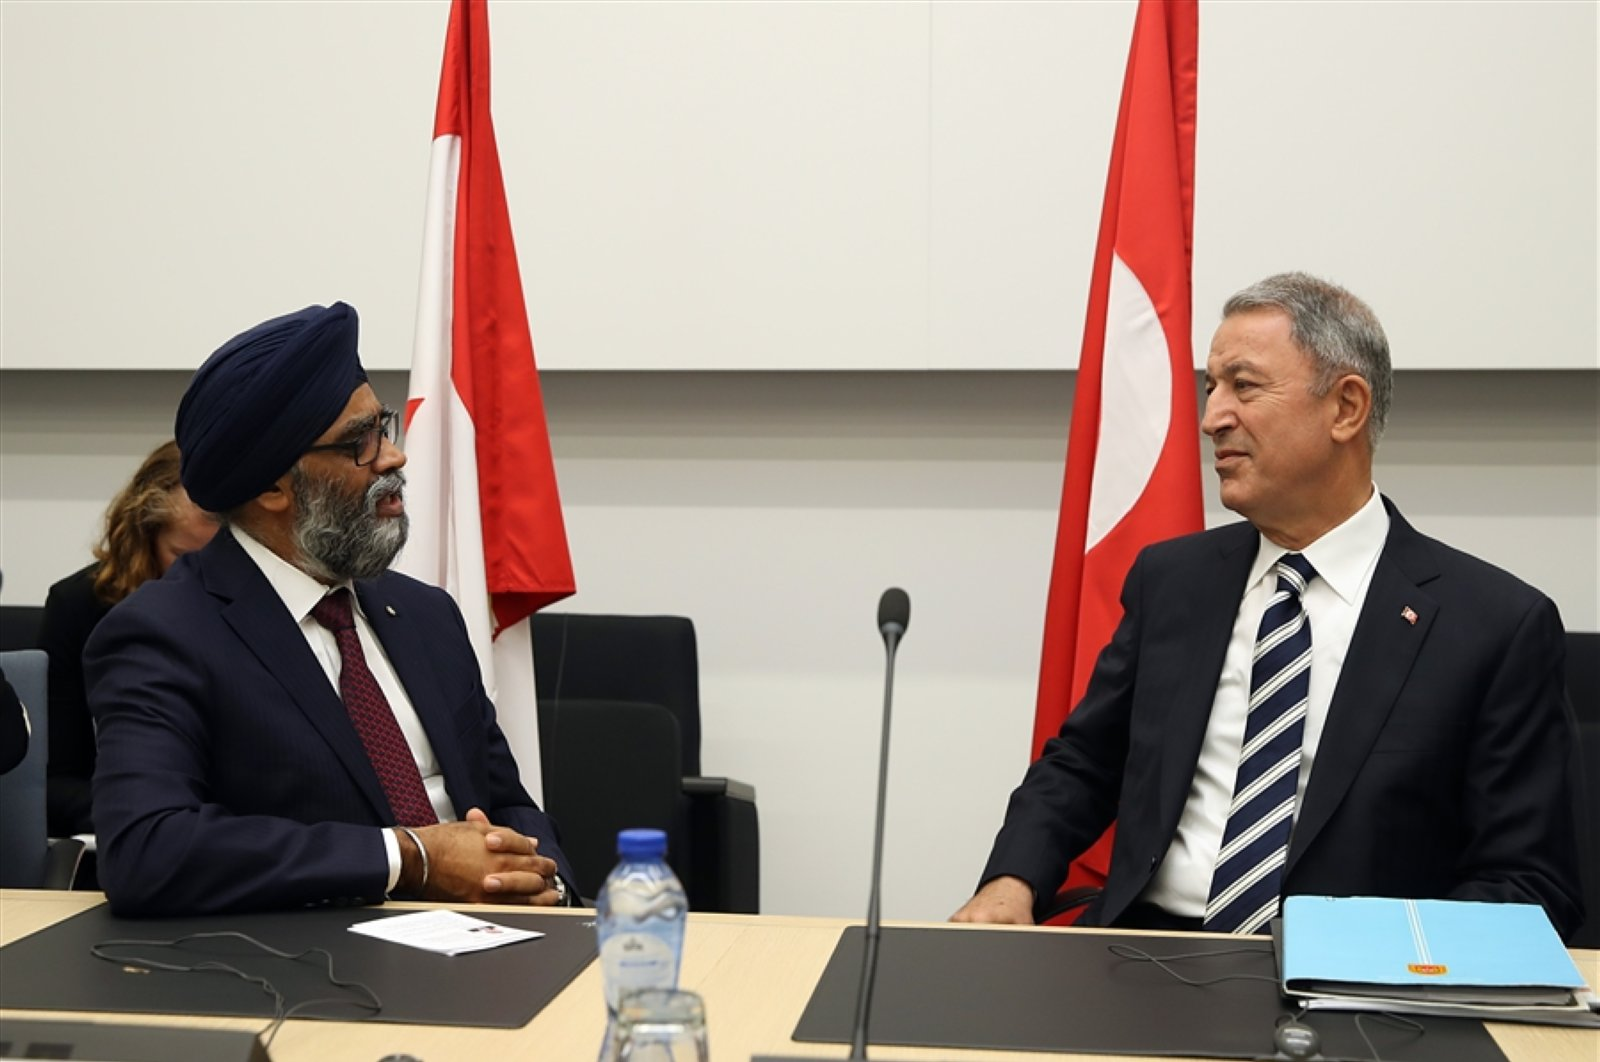 Defense Minister Hulusi Akar (R) speaks with Canadian counterpart Harjit Sajjan in this undated file photo. (Turkish Defense Ministry Handout)